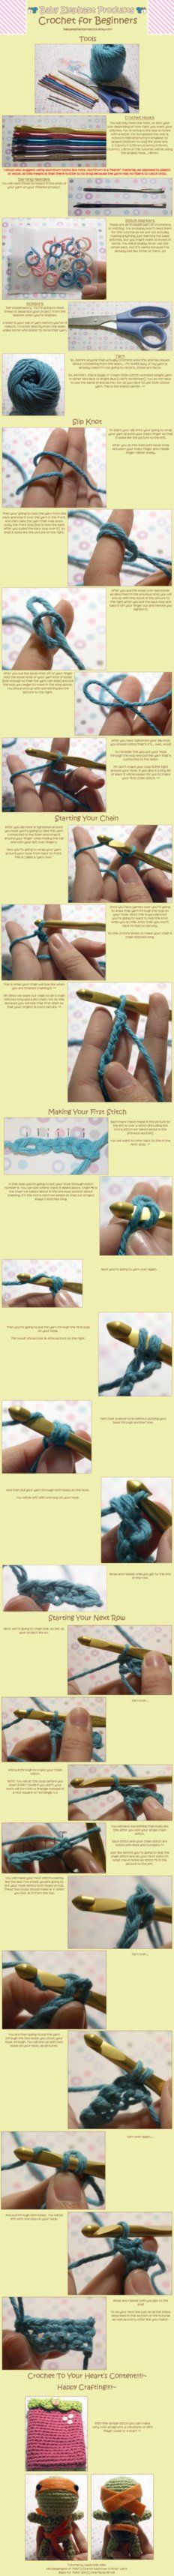 Crocheting Lessons For Beginners : Beginners crochet tutorials on Pinterest Learn to crochet, Crochet ...